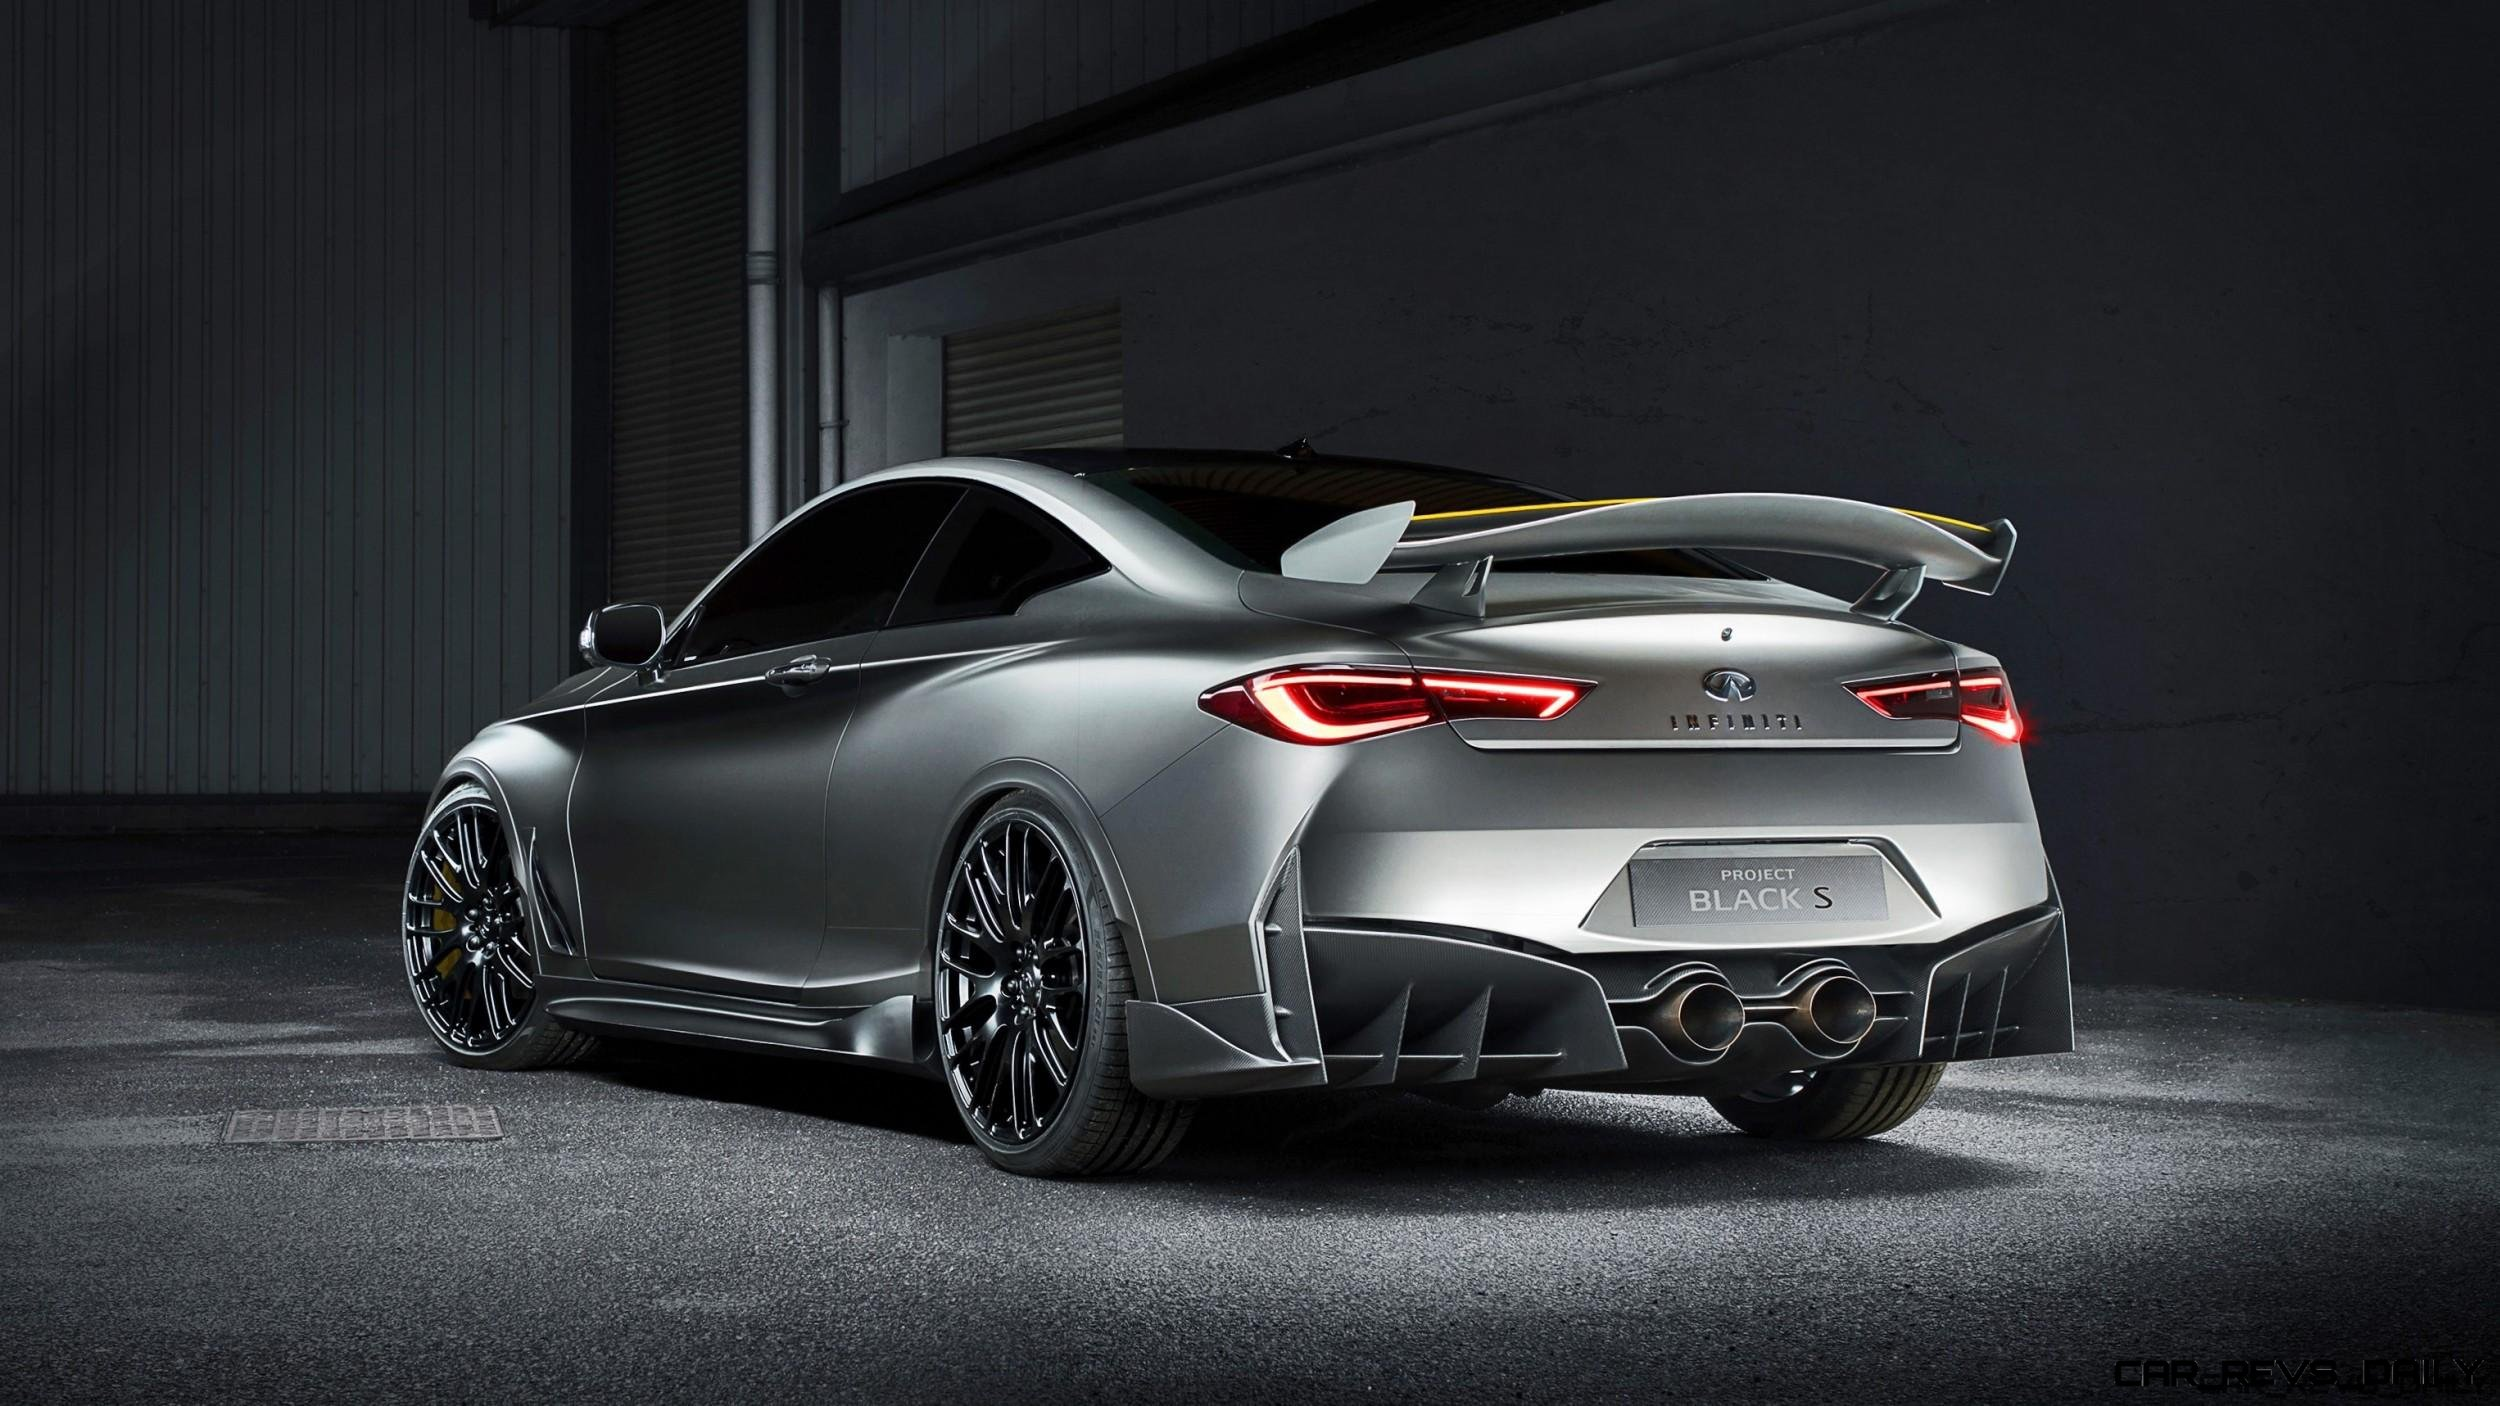 INFINITI - Project Black S FIRST image R - 6 March 2017 4k